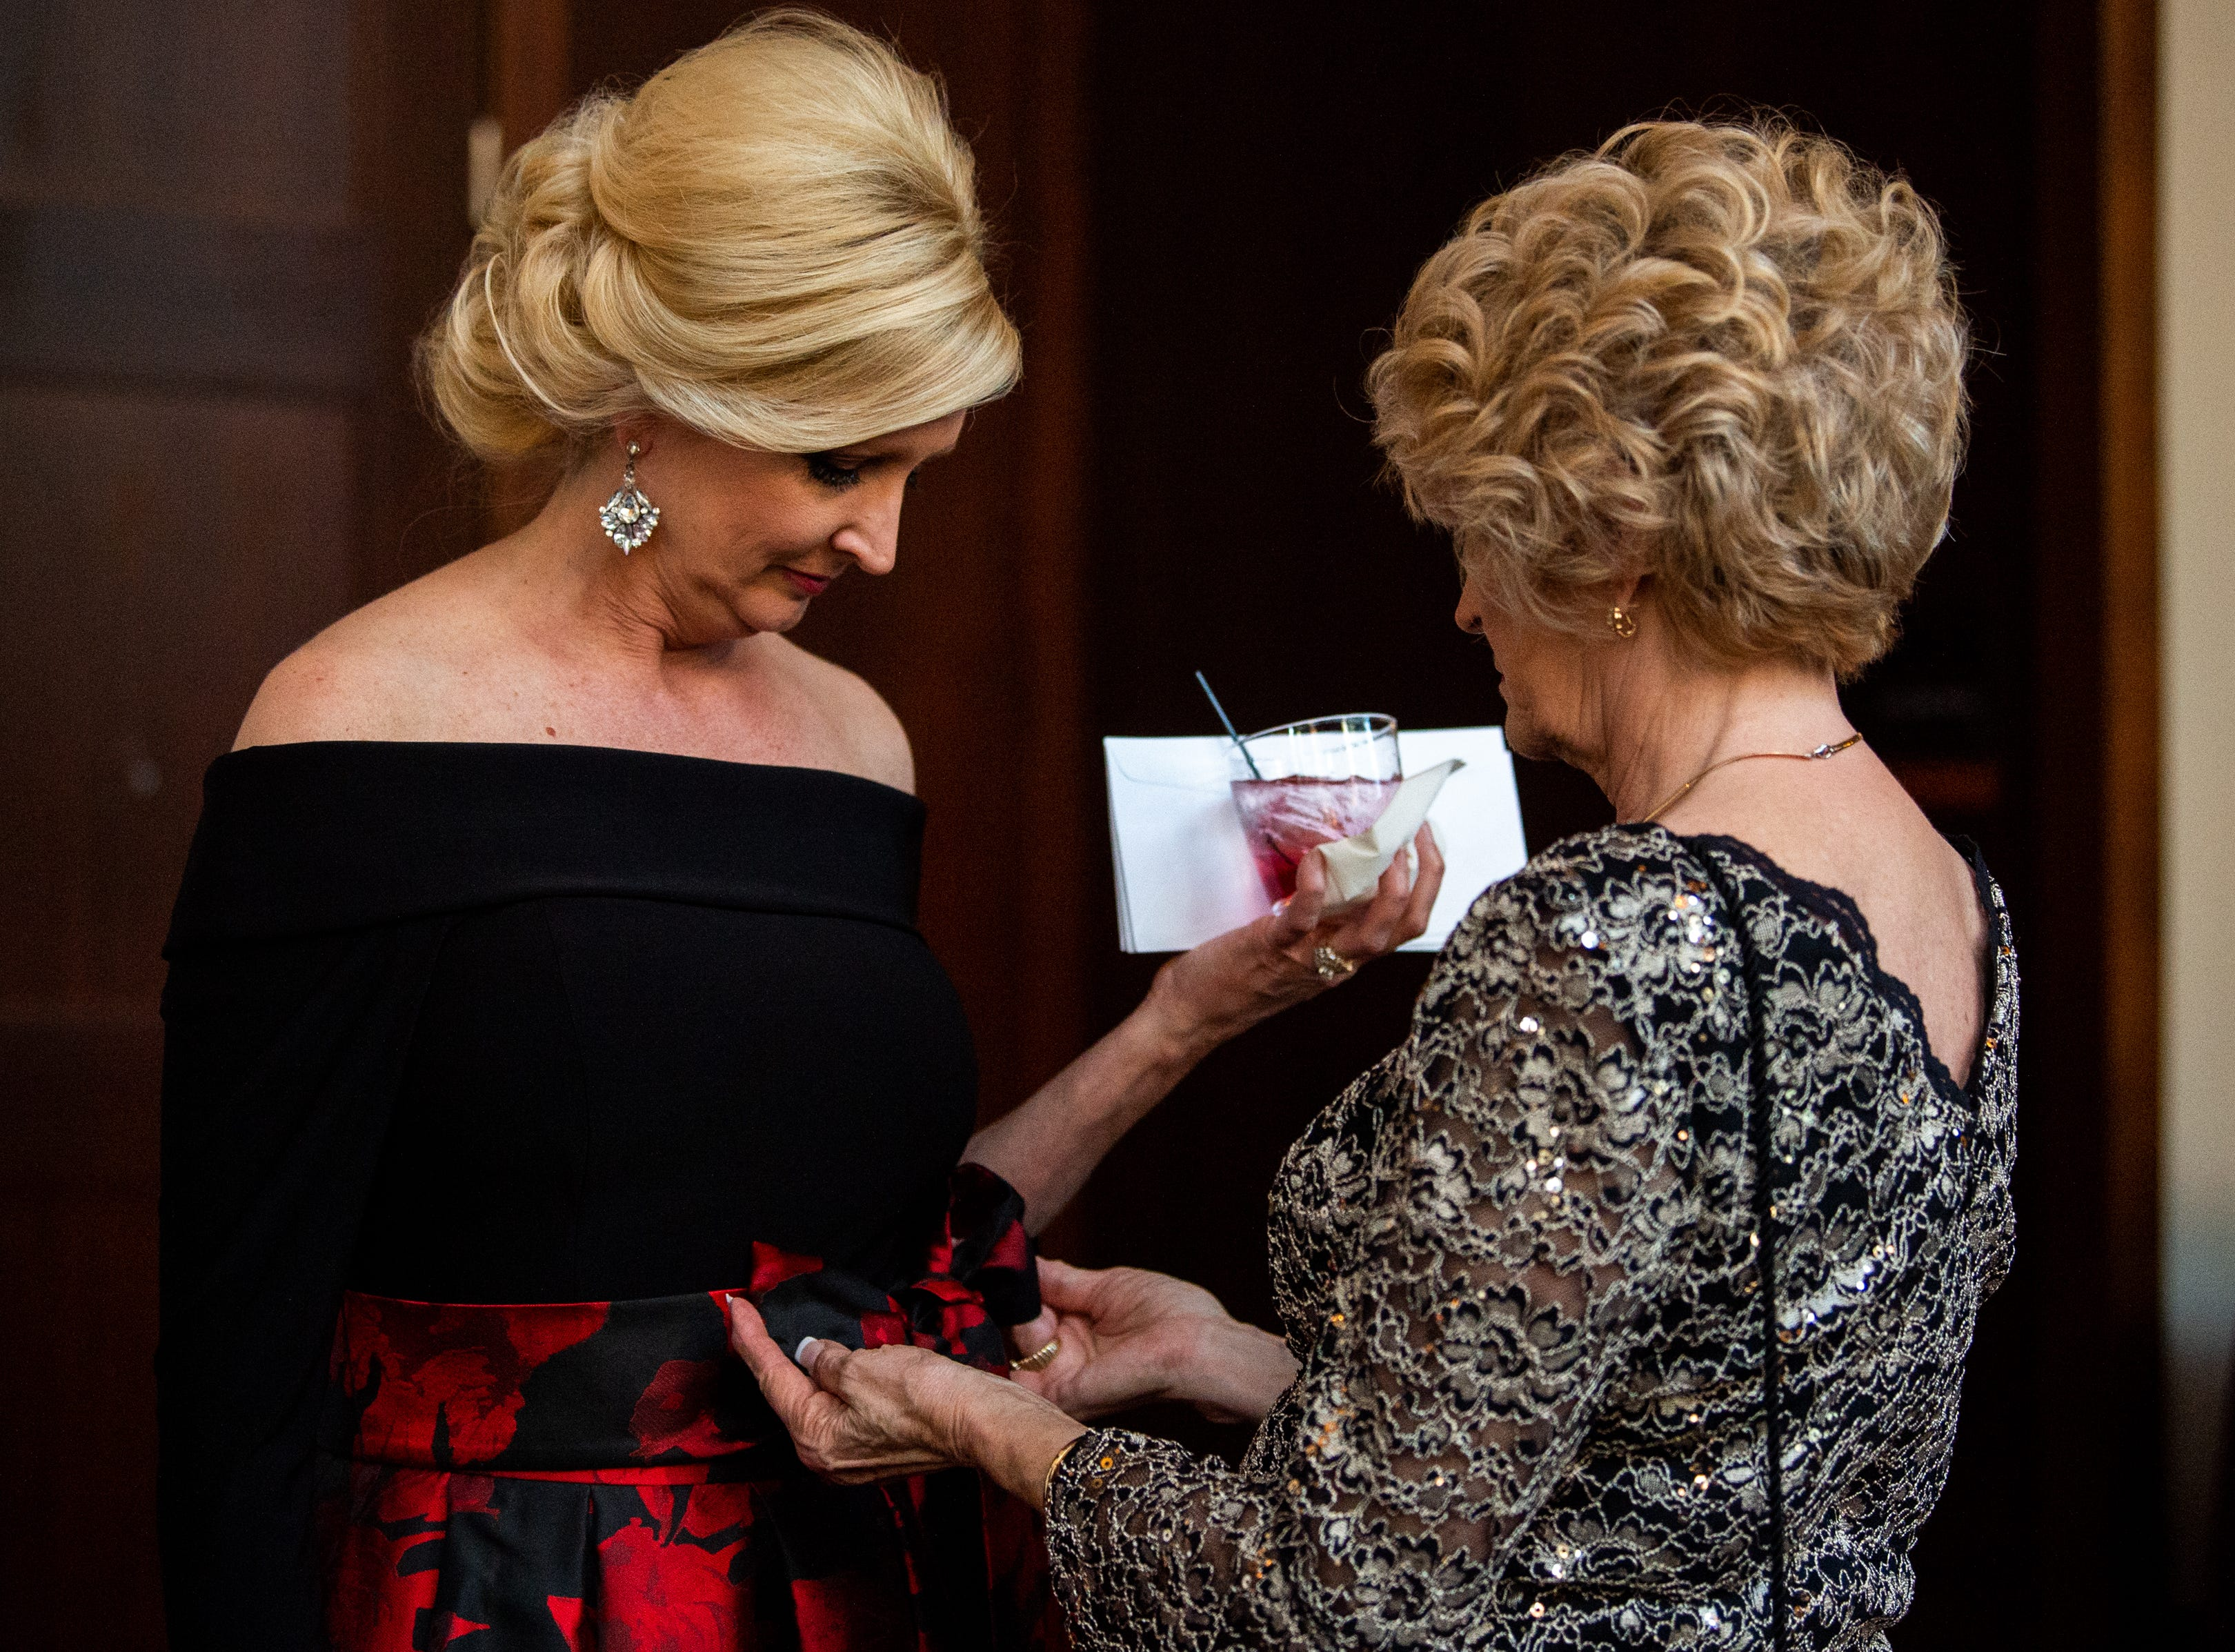 Co-chair Andrea Herrera receives help with her bow during Austin Peay State University's annual Candlelight Ball at the Omni Nashville Hotel Saturday, March 16, 2019, in Nashville, Tenn.